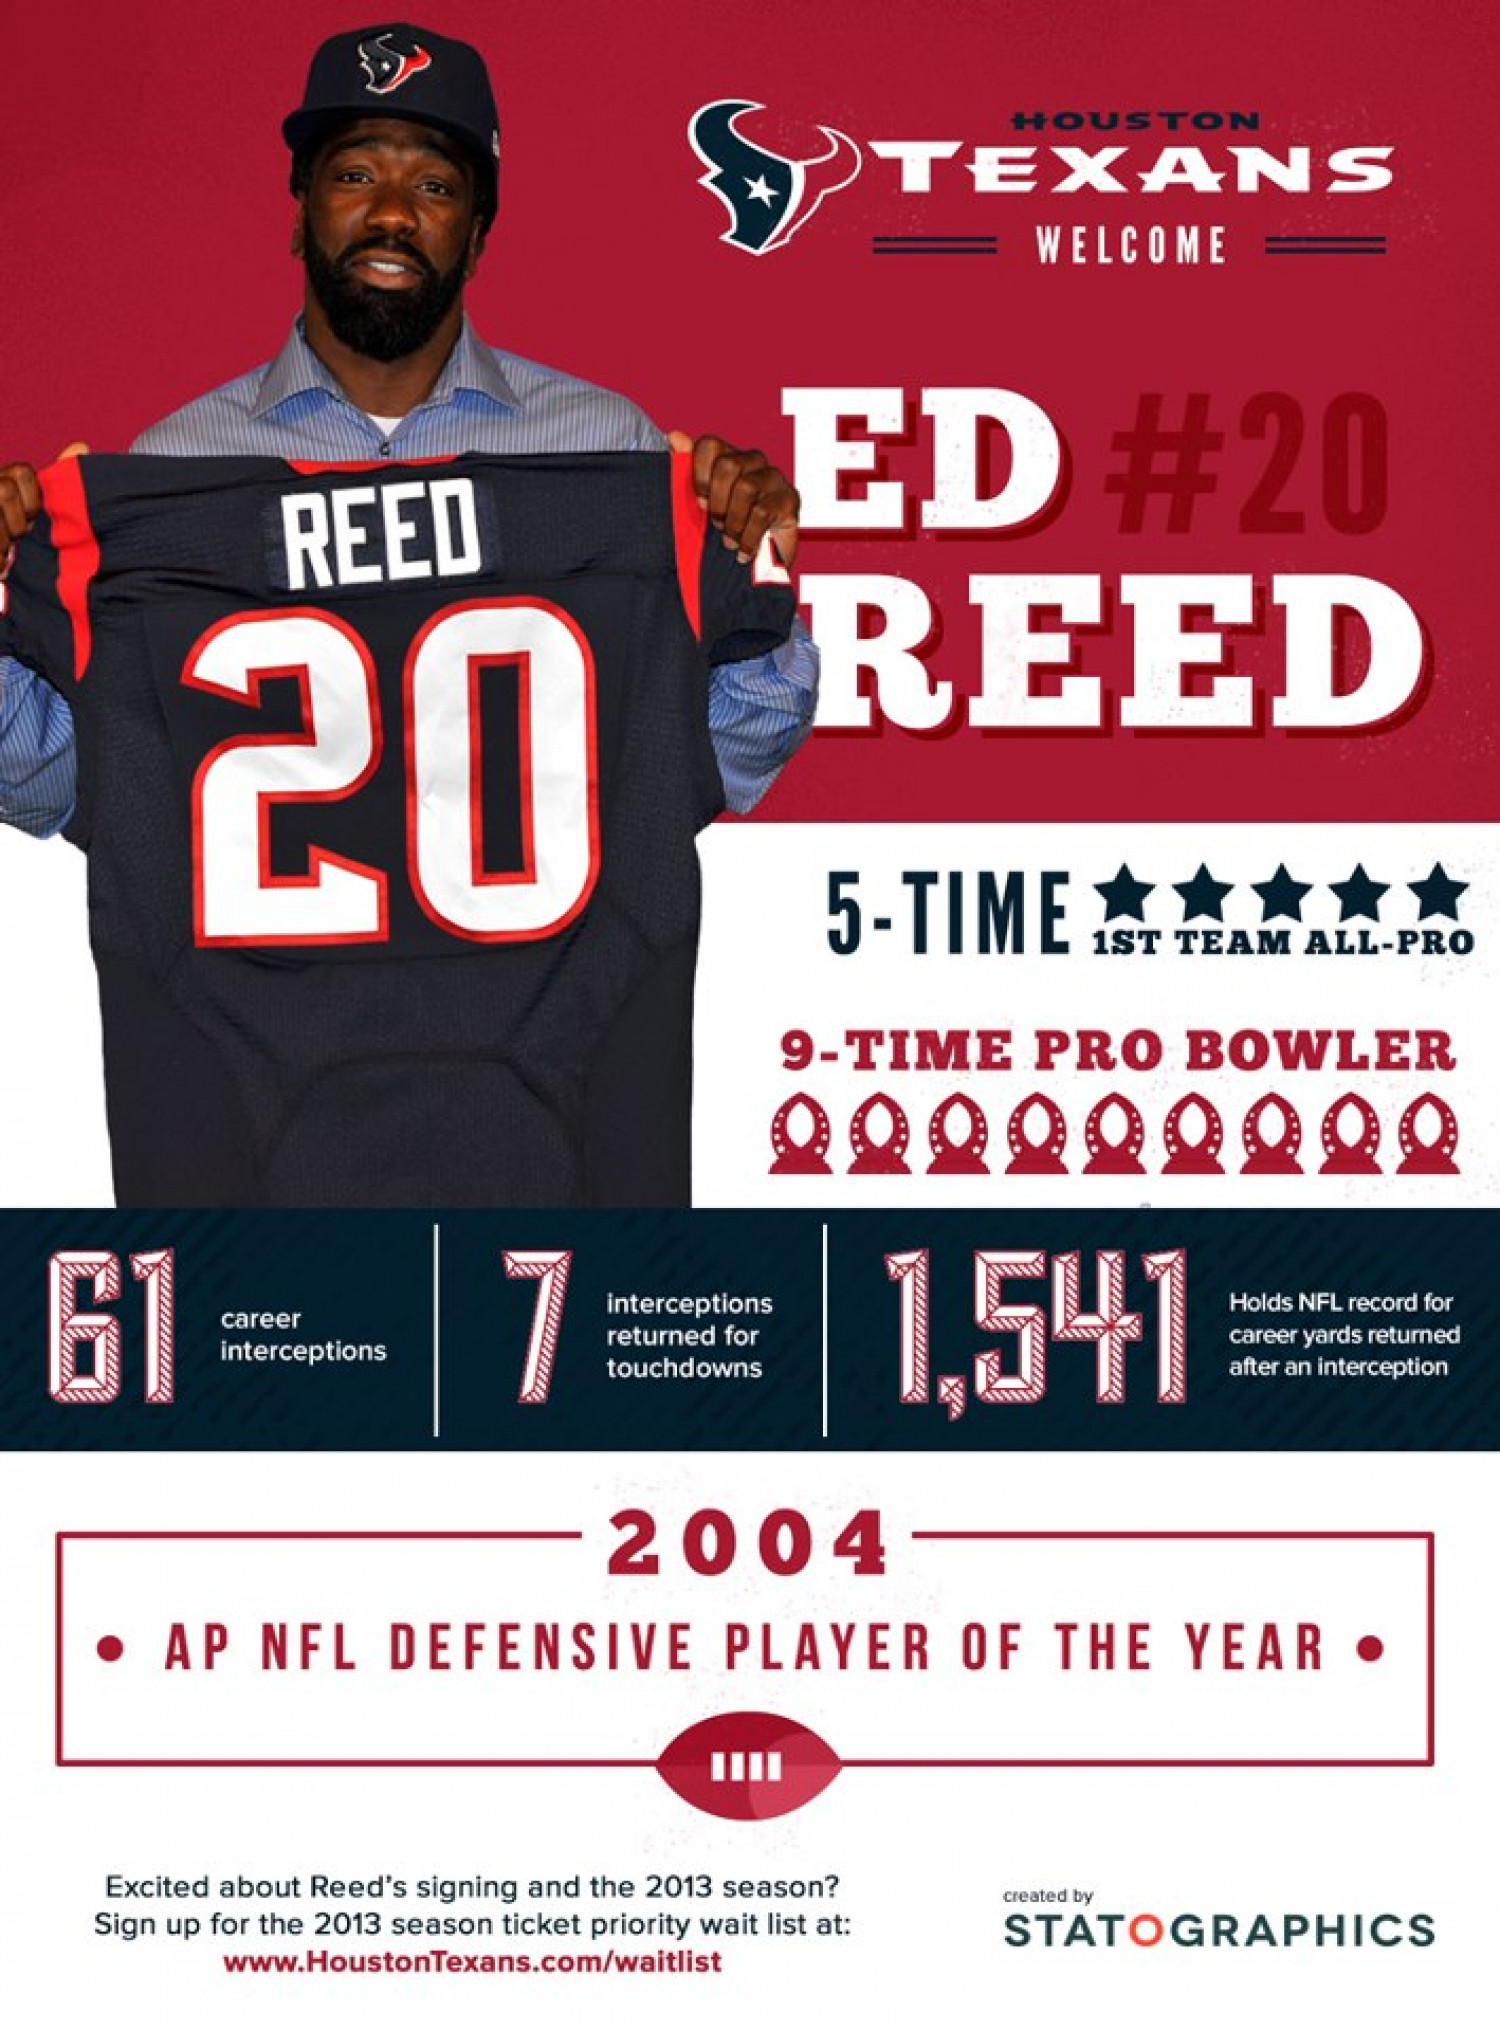 Texans Welcome Ed Reed Infographic